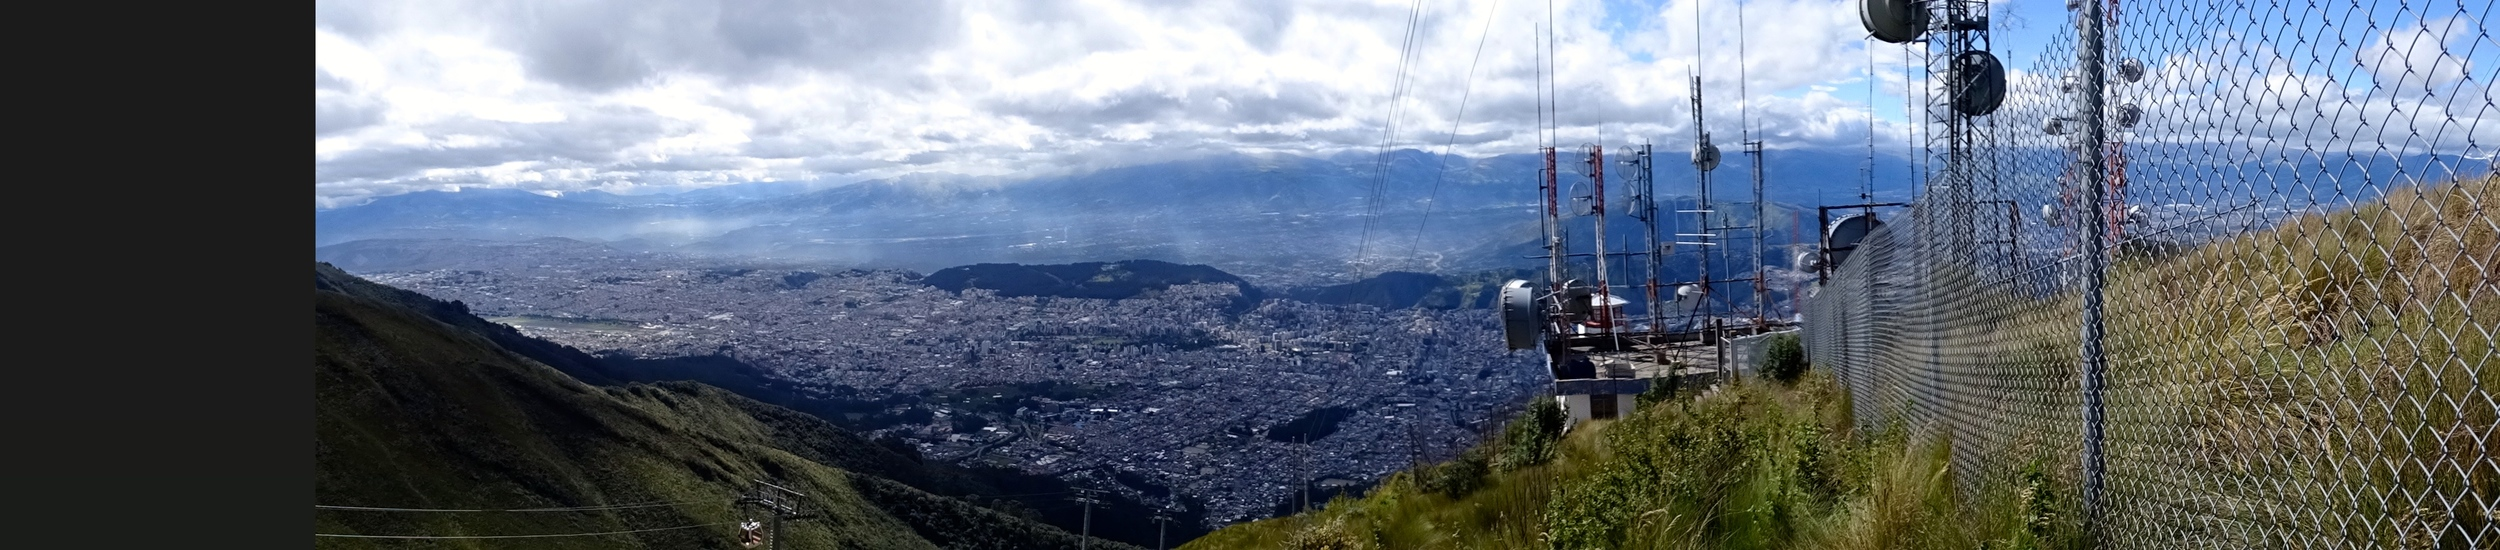 More magnificent views of Quito.